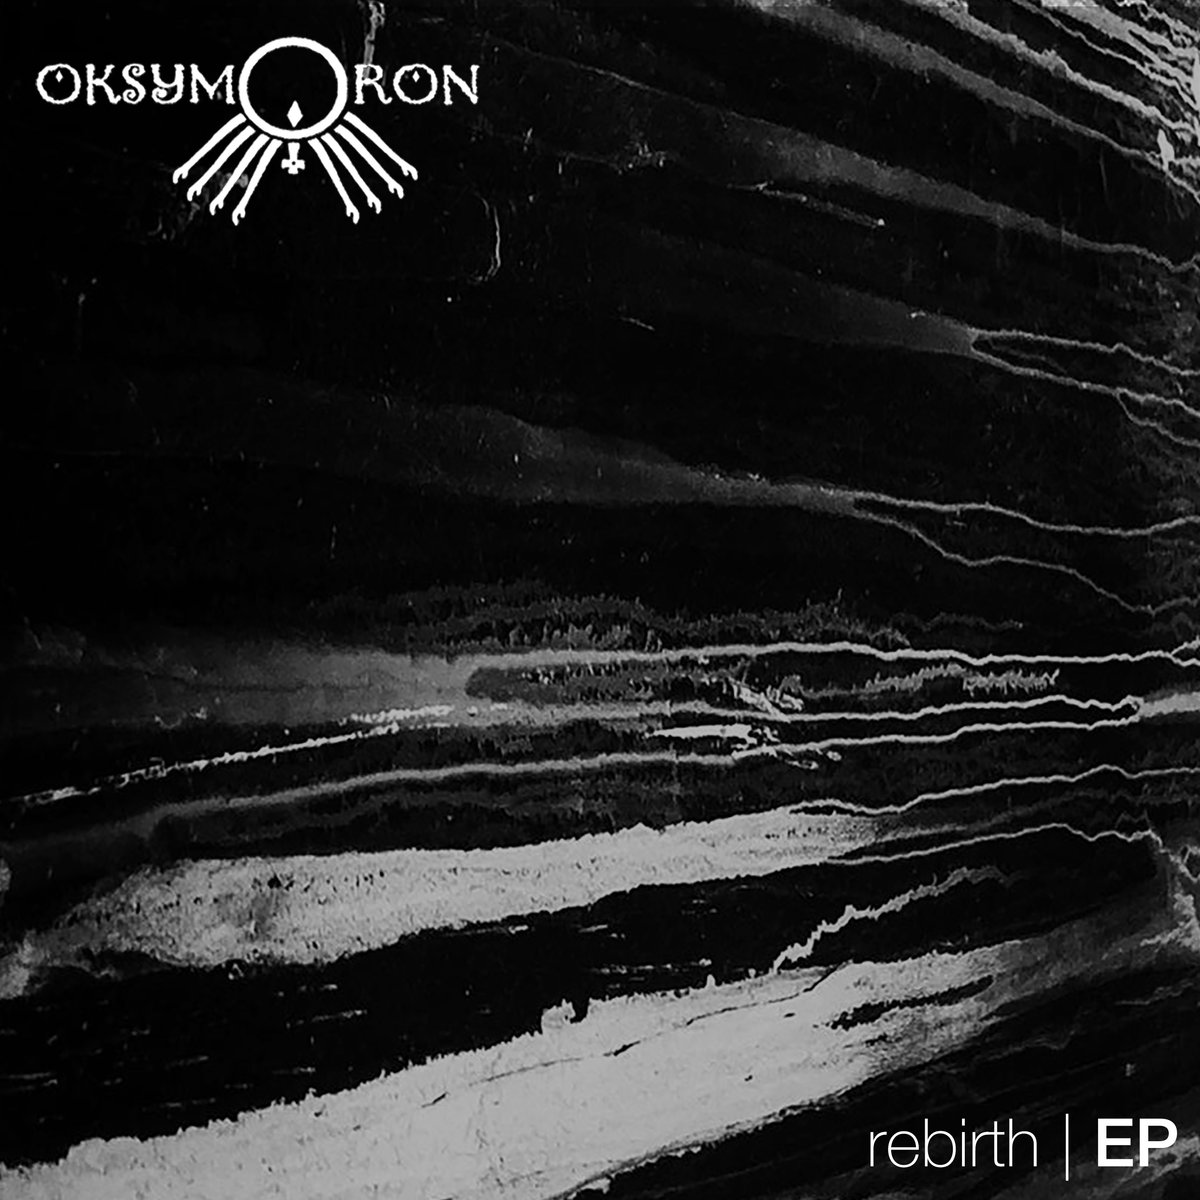 Rebirth (EP) by OKSYMORON